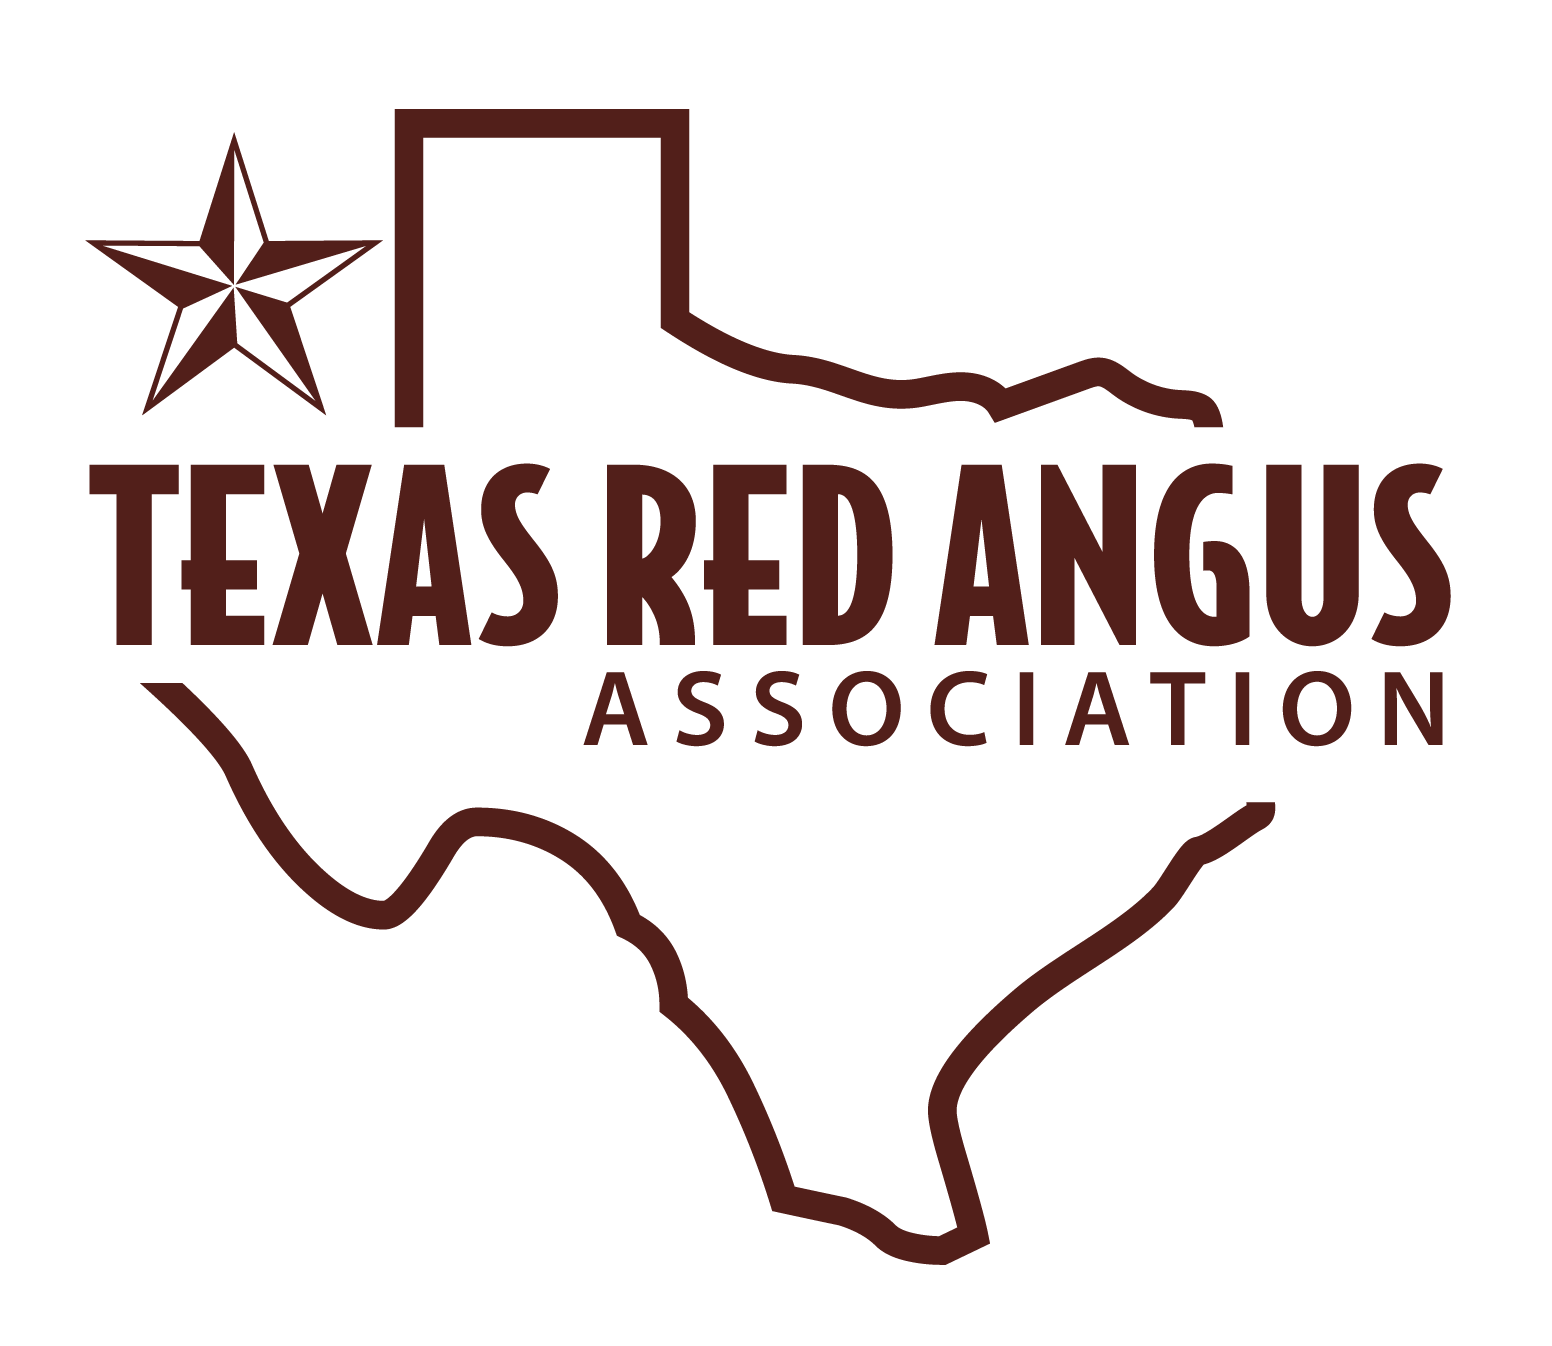 Texas Red Angus Association